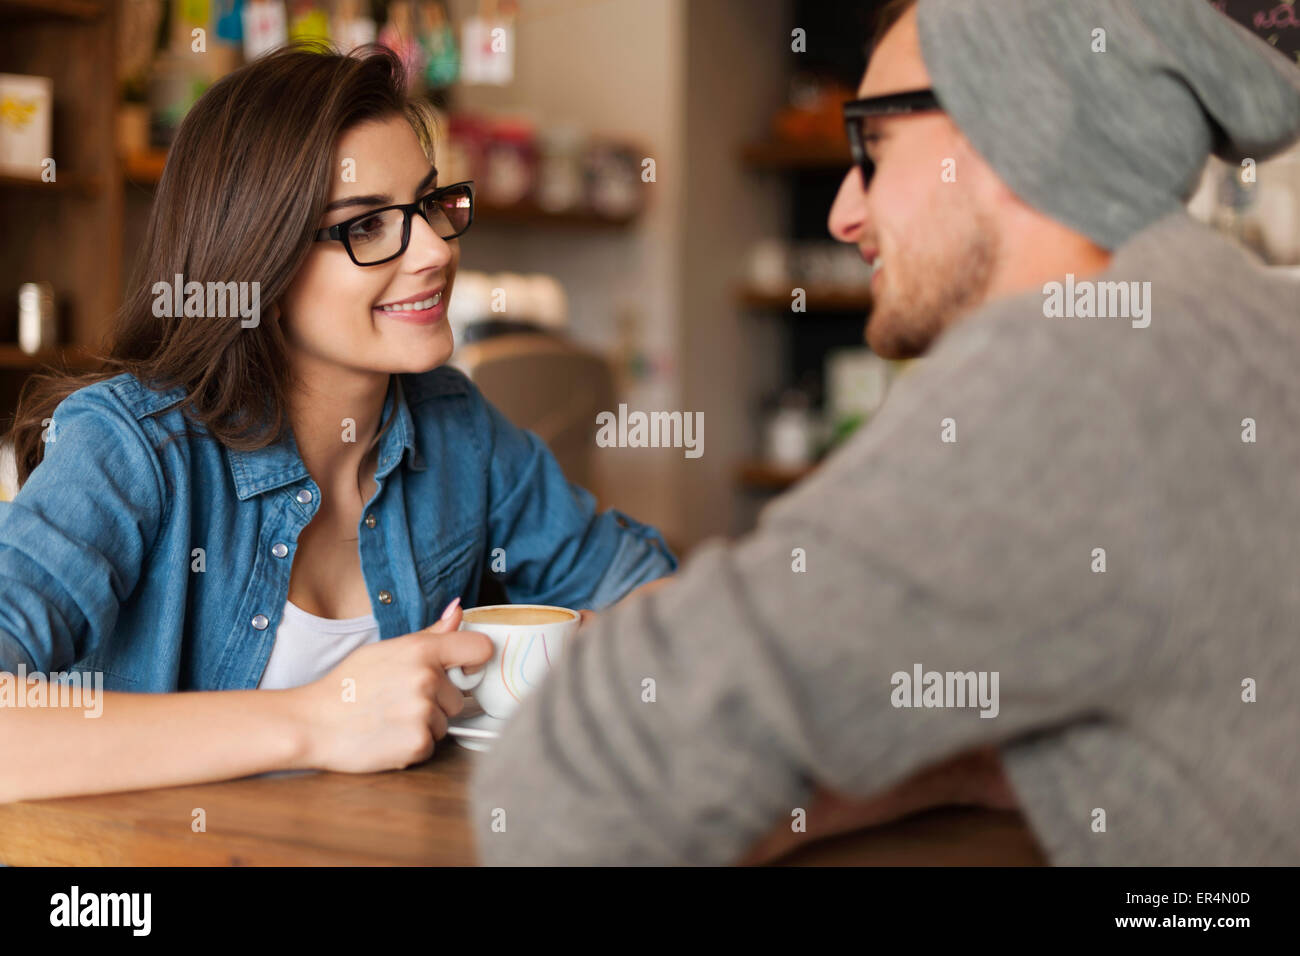 Meeting of happy couple at cafe. Krakow, Poland - Stock Image